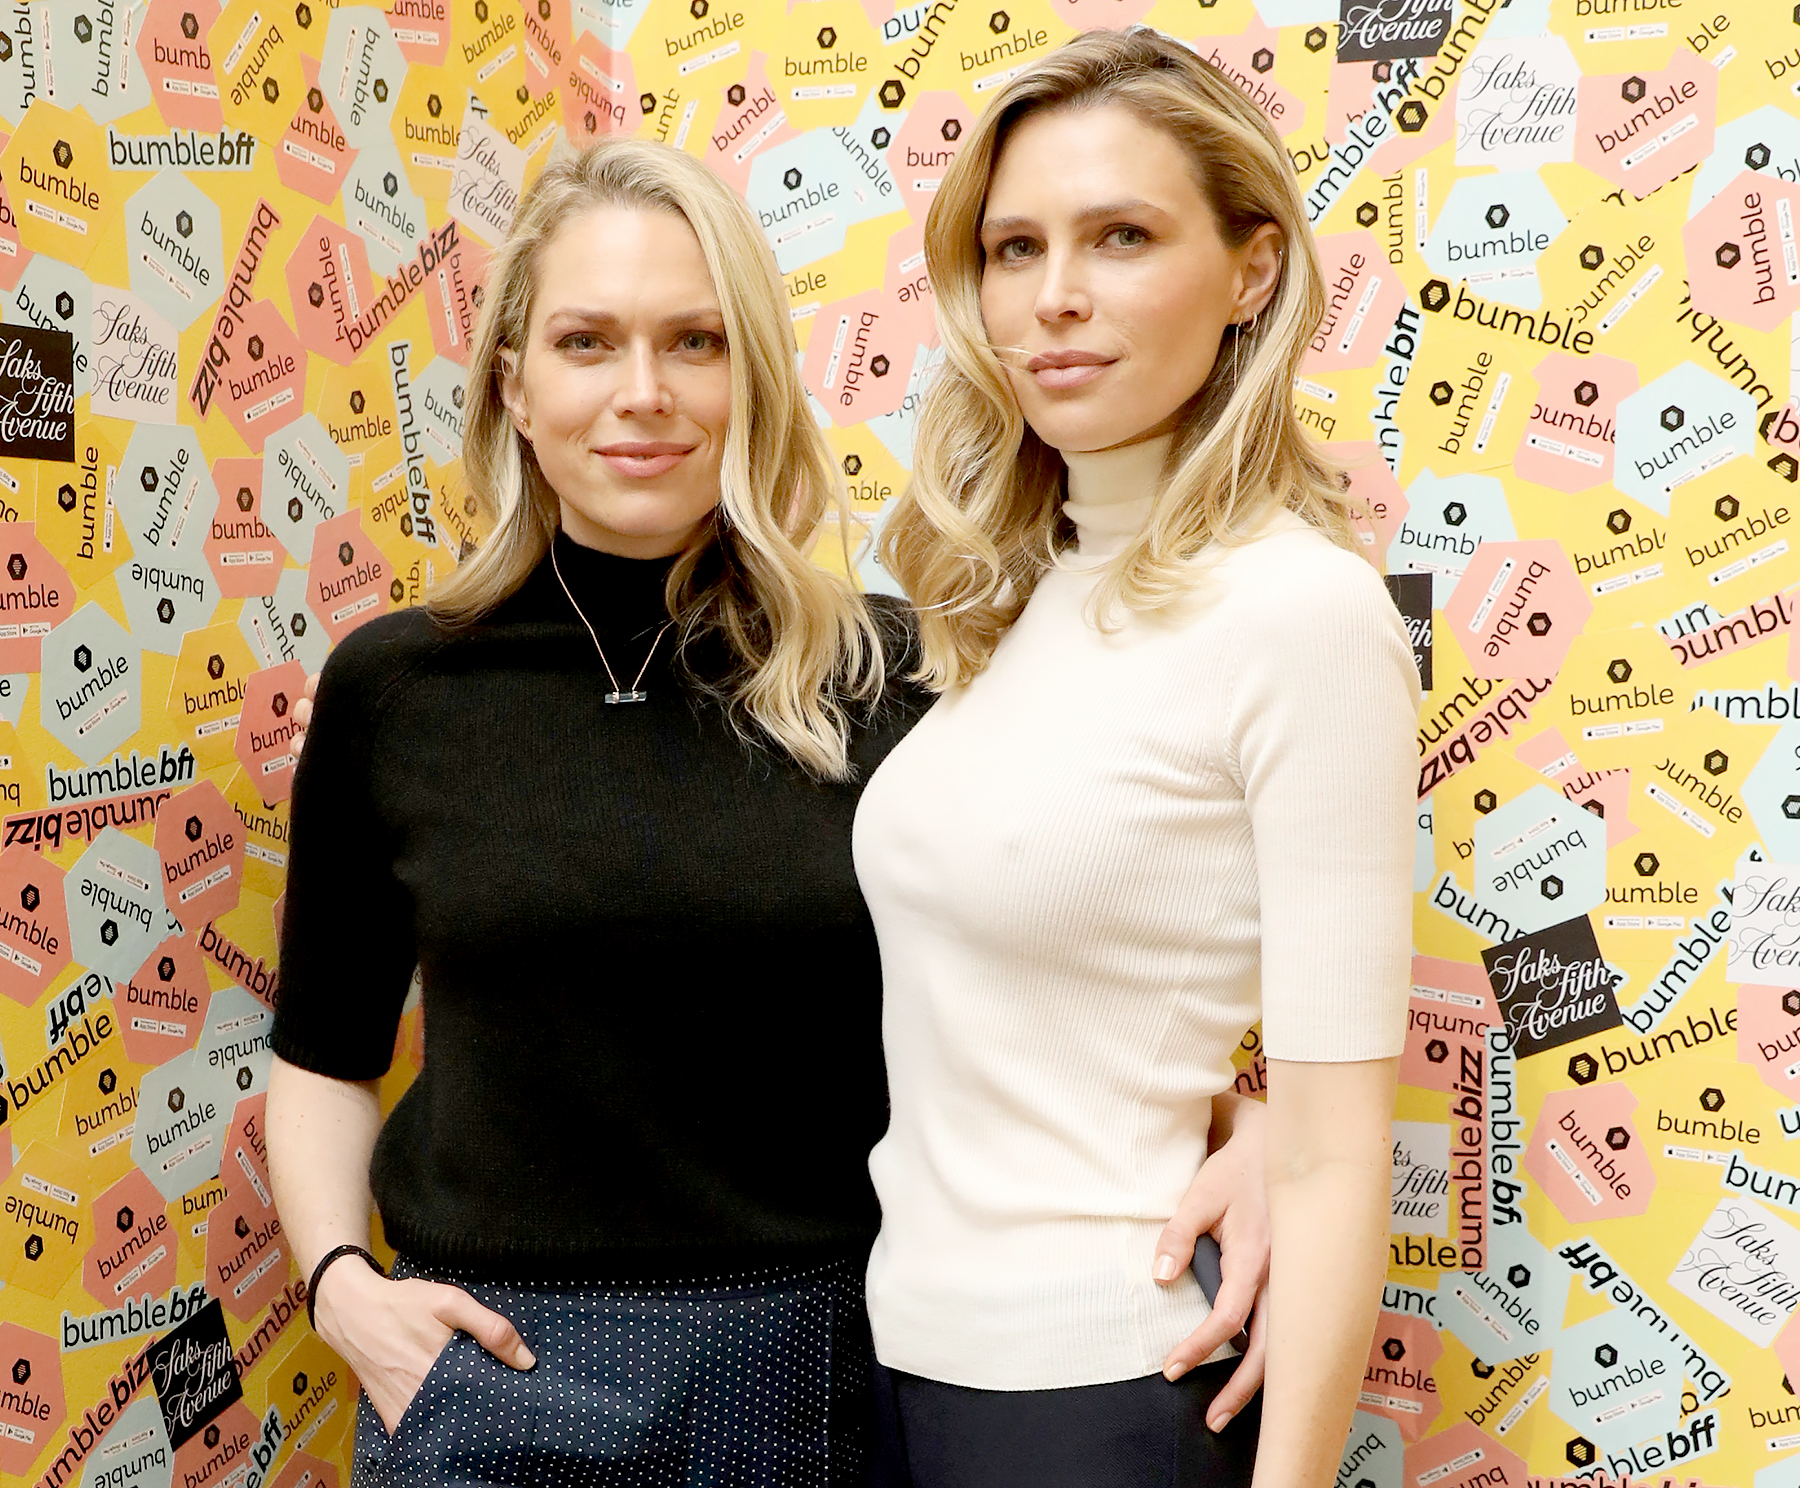 Erin and Sara Foster Reveal Their Best Dares and Beauty Secrets